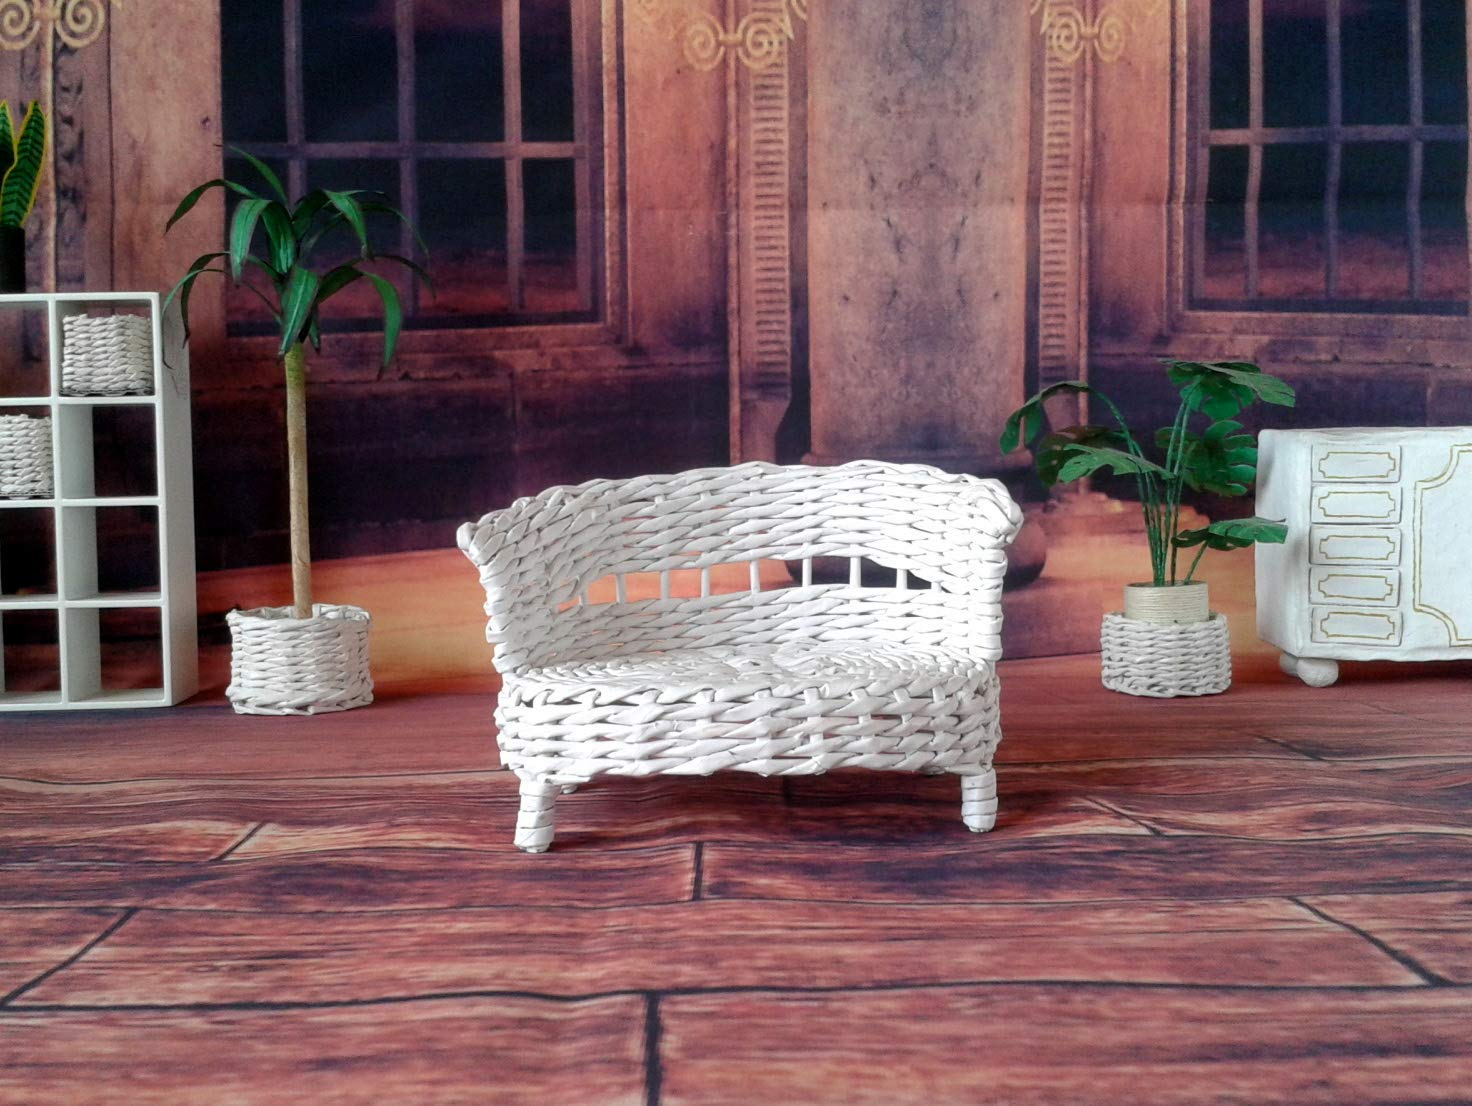 Miniature handmade white wicker sofa for 1//8 scale or 6-inch dolls and dollhouses Lati Yellow couch